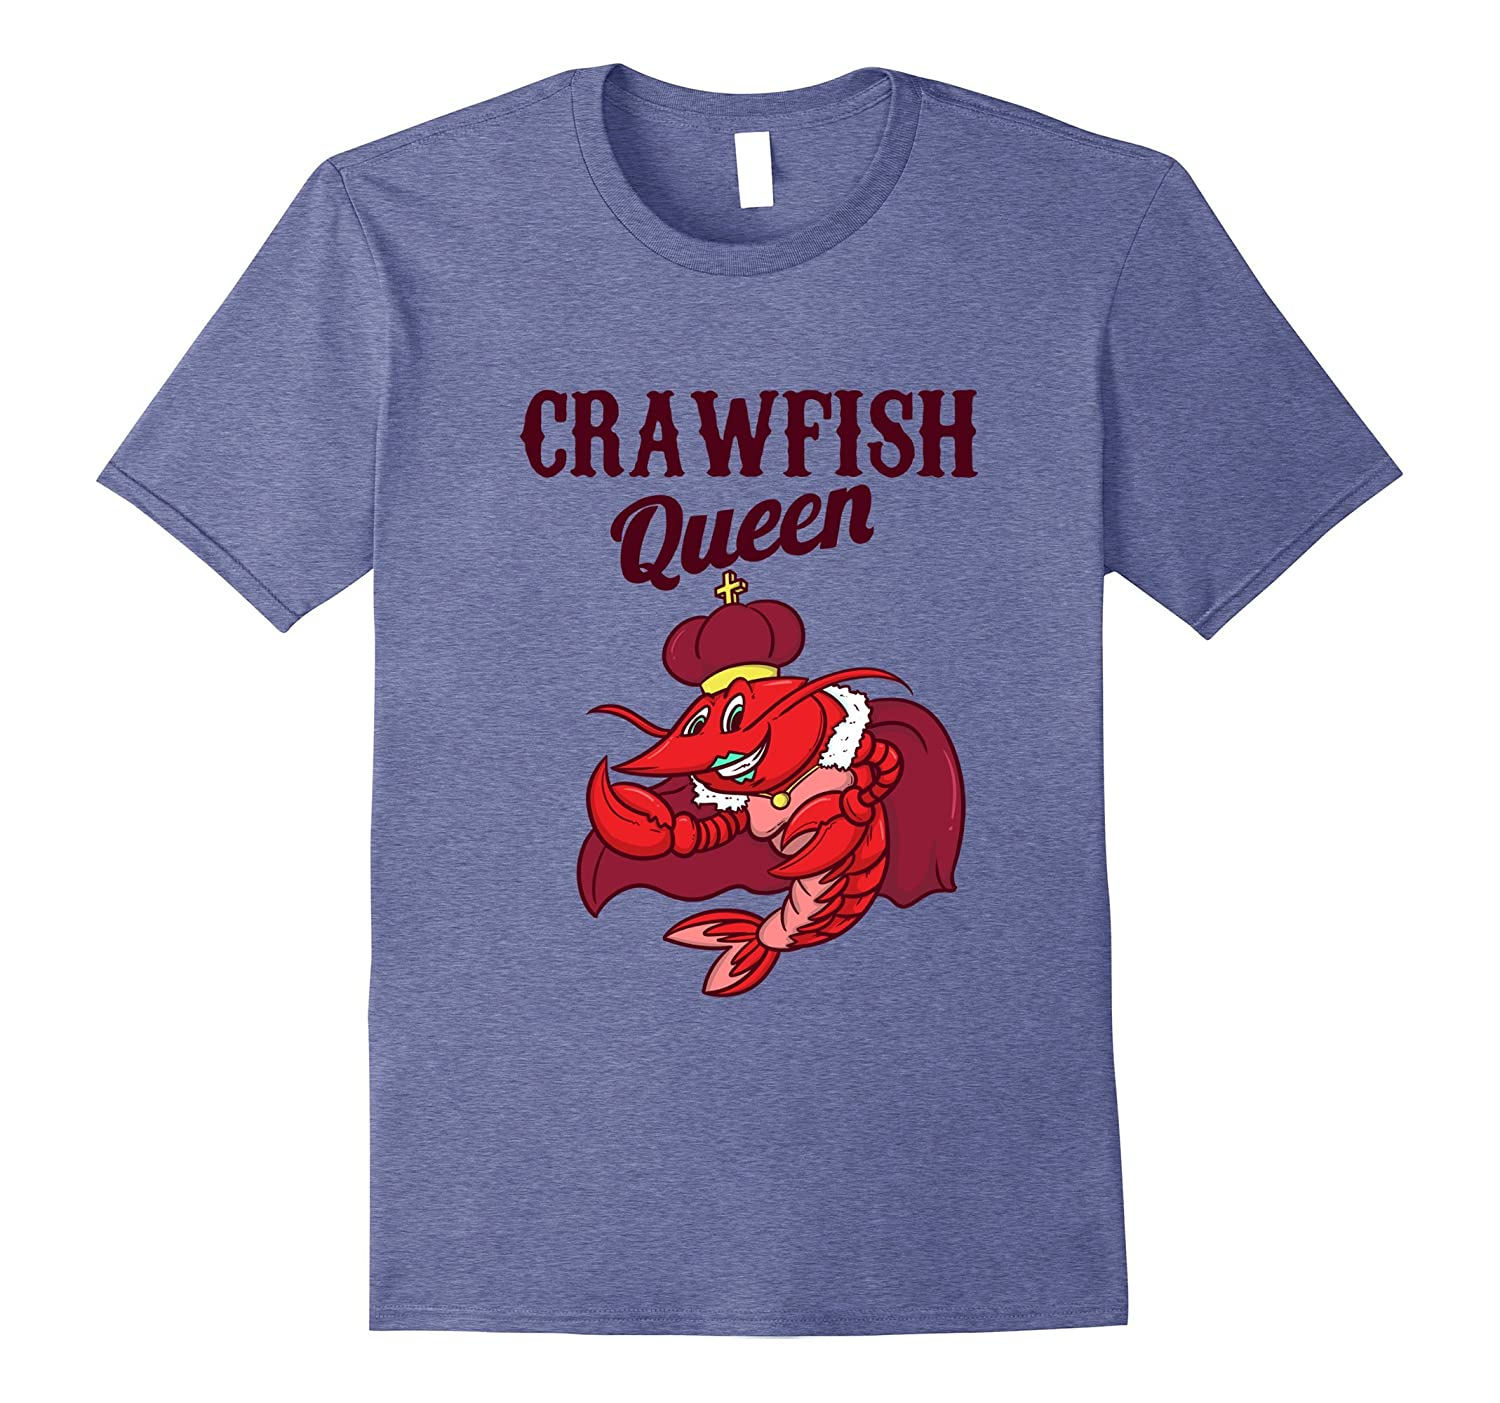 6b1ad210cb Crawfish T Shirt Crawfish Queen Funny Gift Shirt Cajun Boil-CD ...